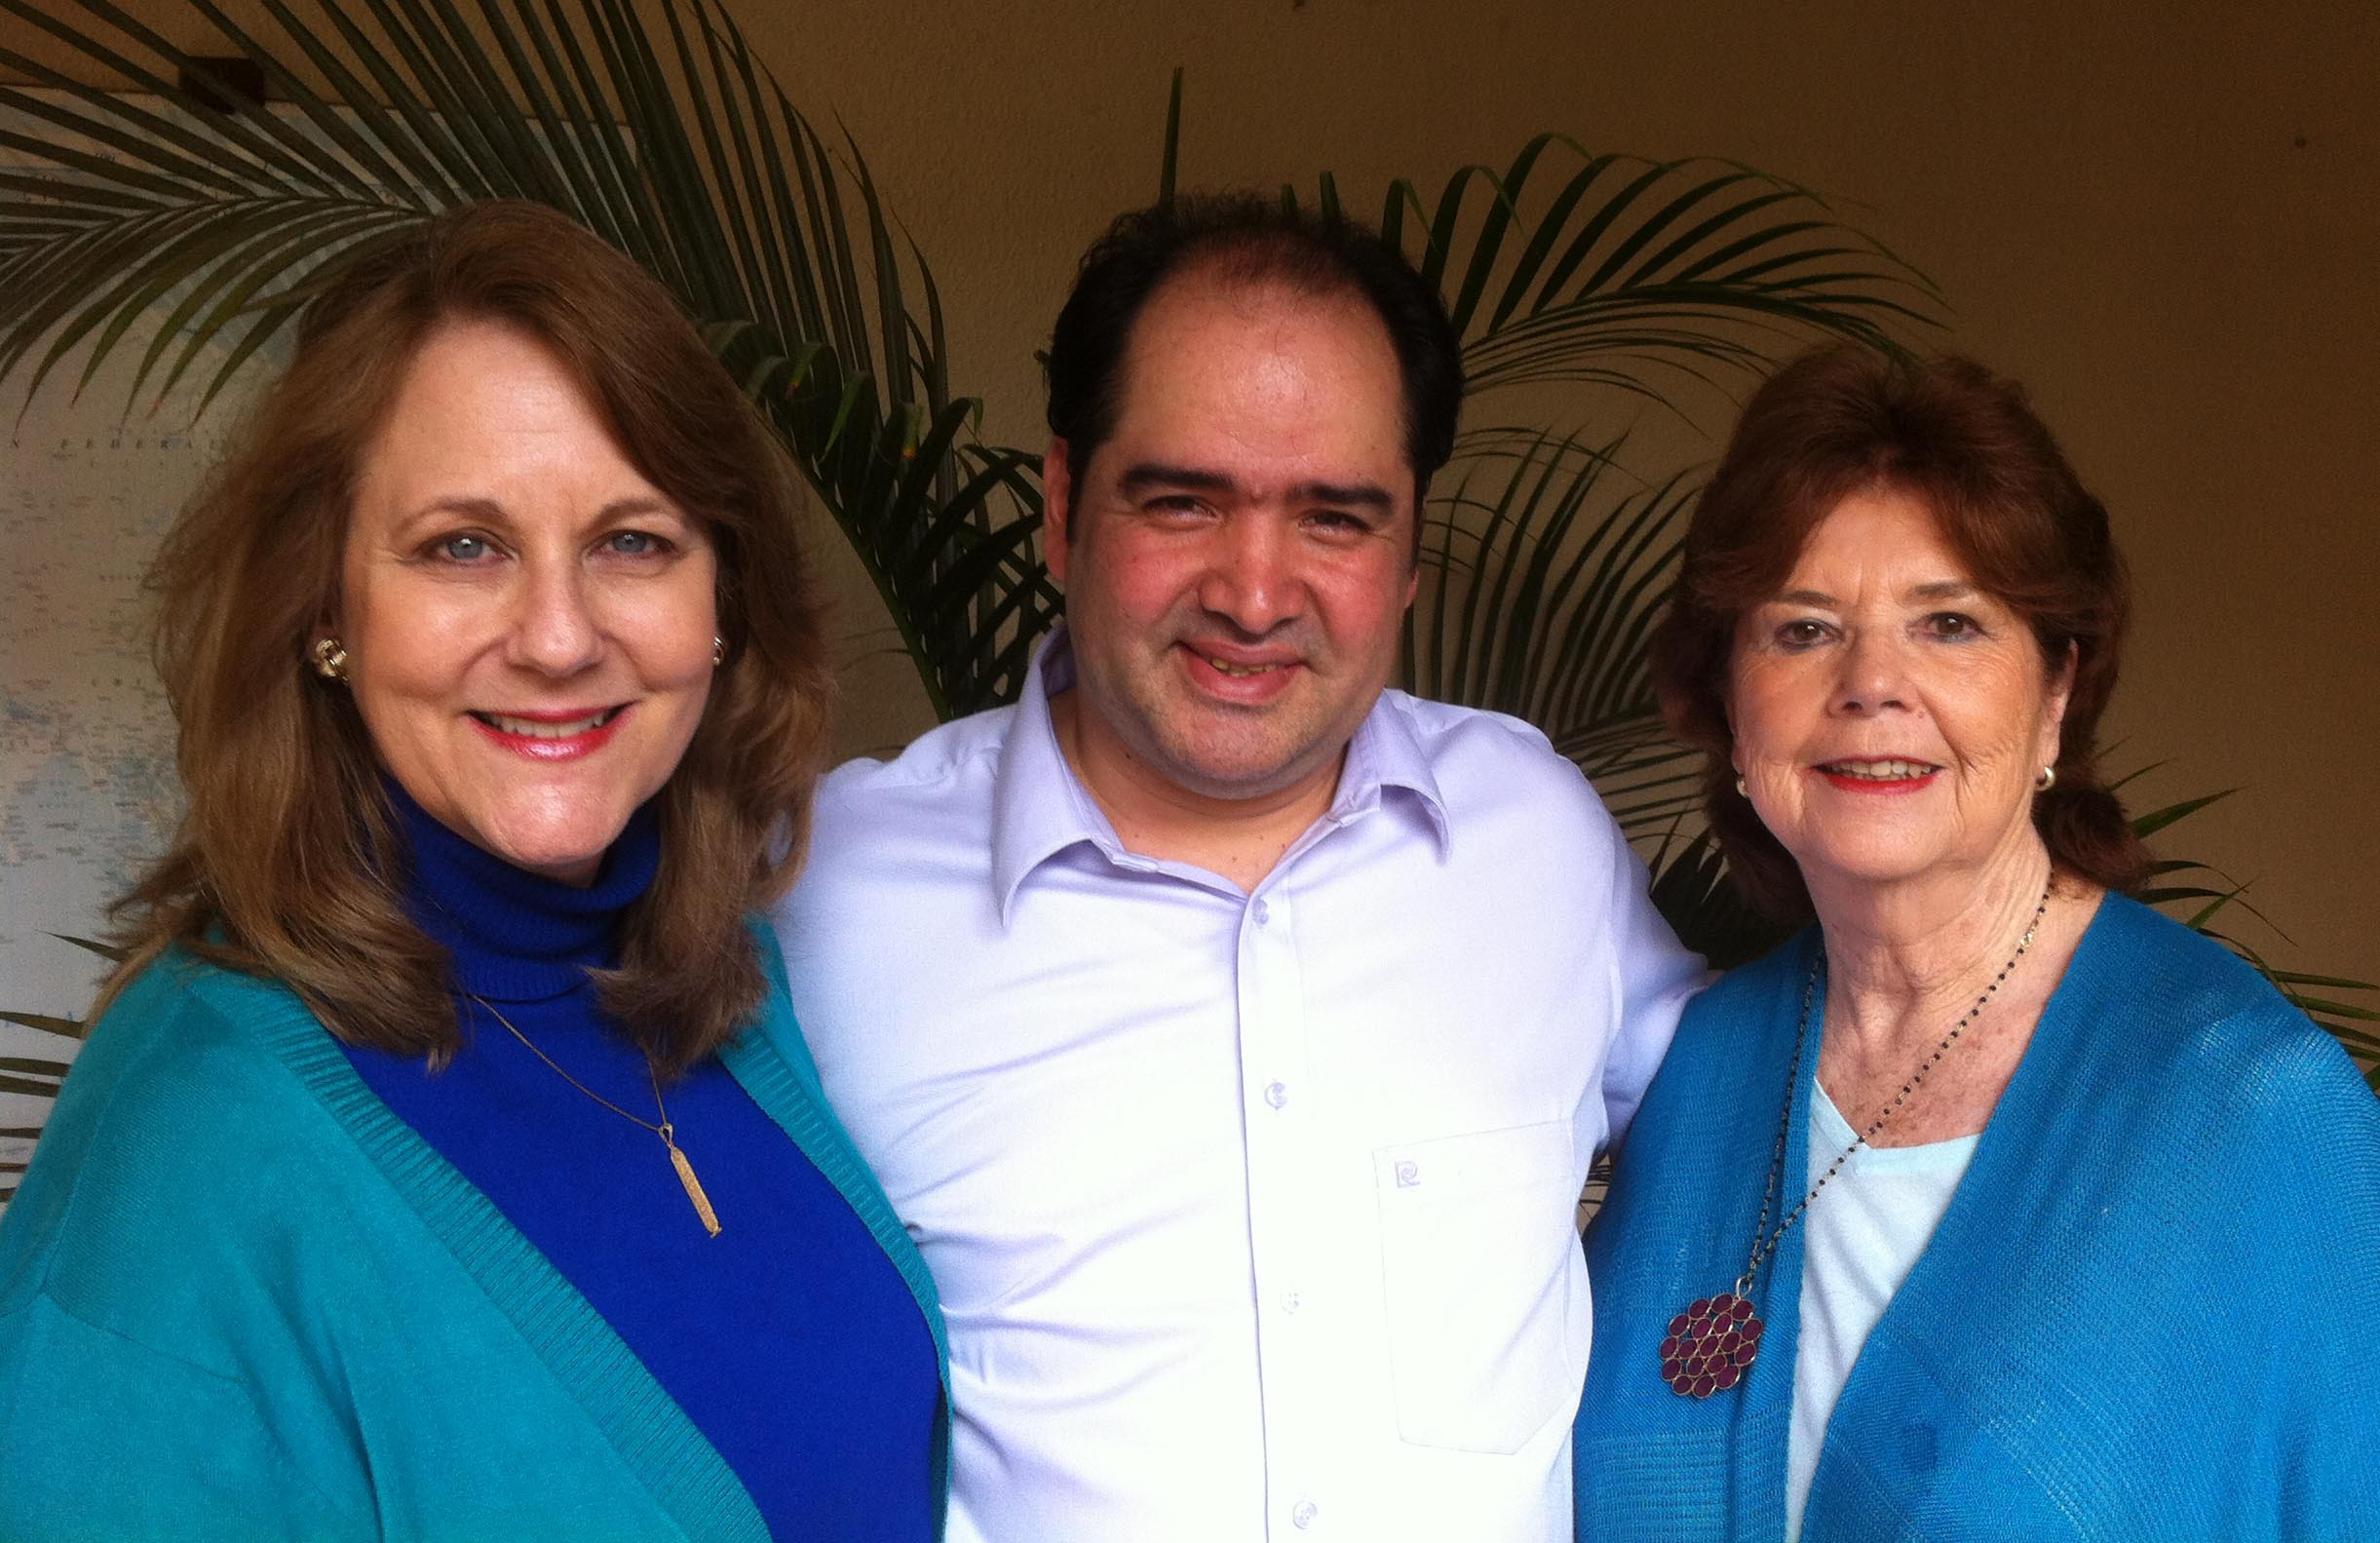 Betty Whitbeck, Heber Morales, Juliana O' Connor